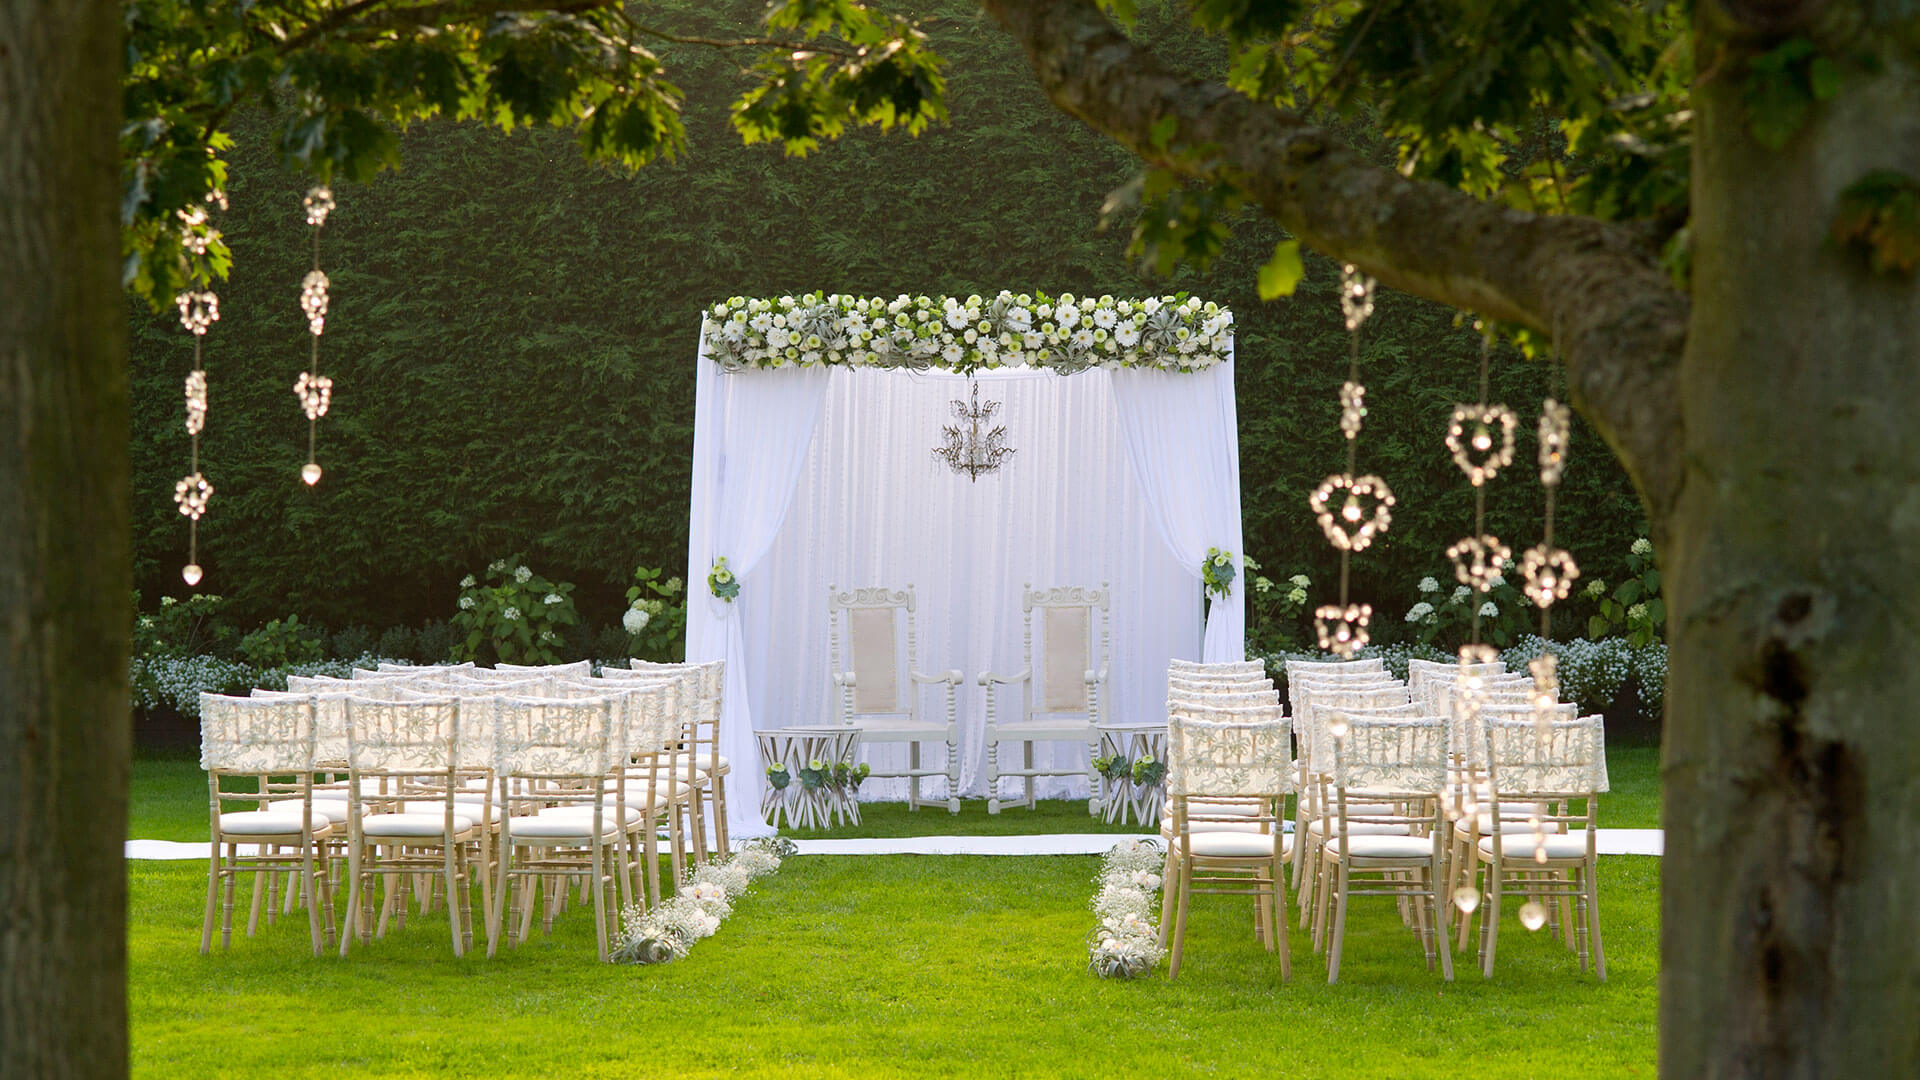 Outdoor Wedding Ceremony: Outdoor Wedding Venue In Epping, Essex